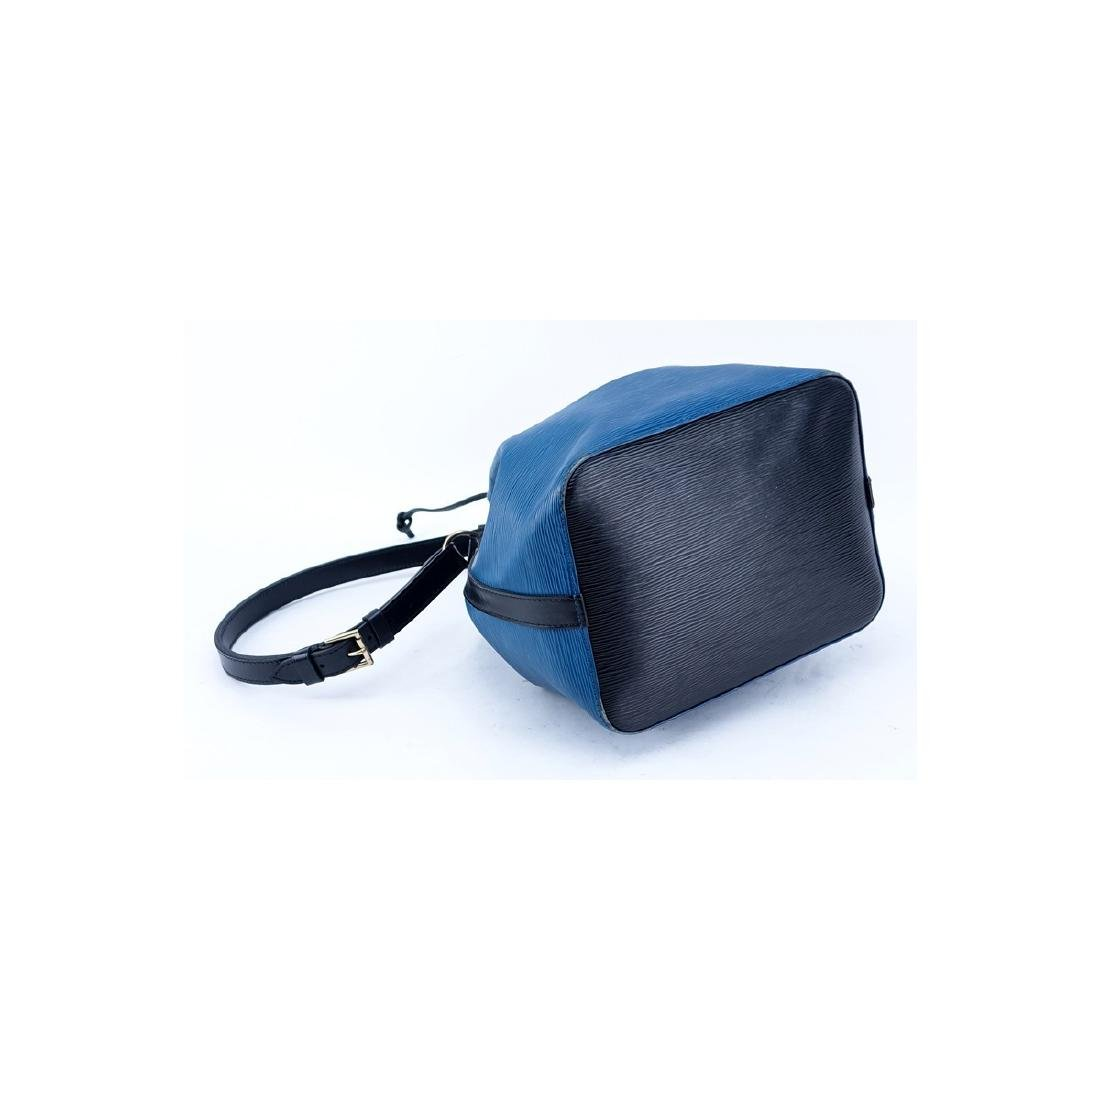 Louis Vuitton Blue/Black Epi Leather Noe Bicolor - 2